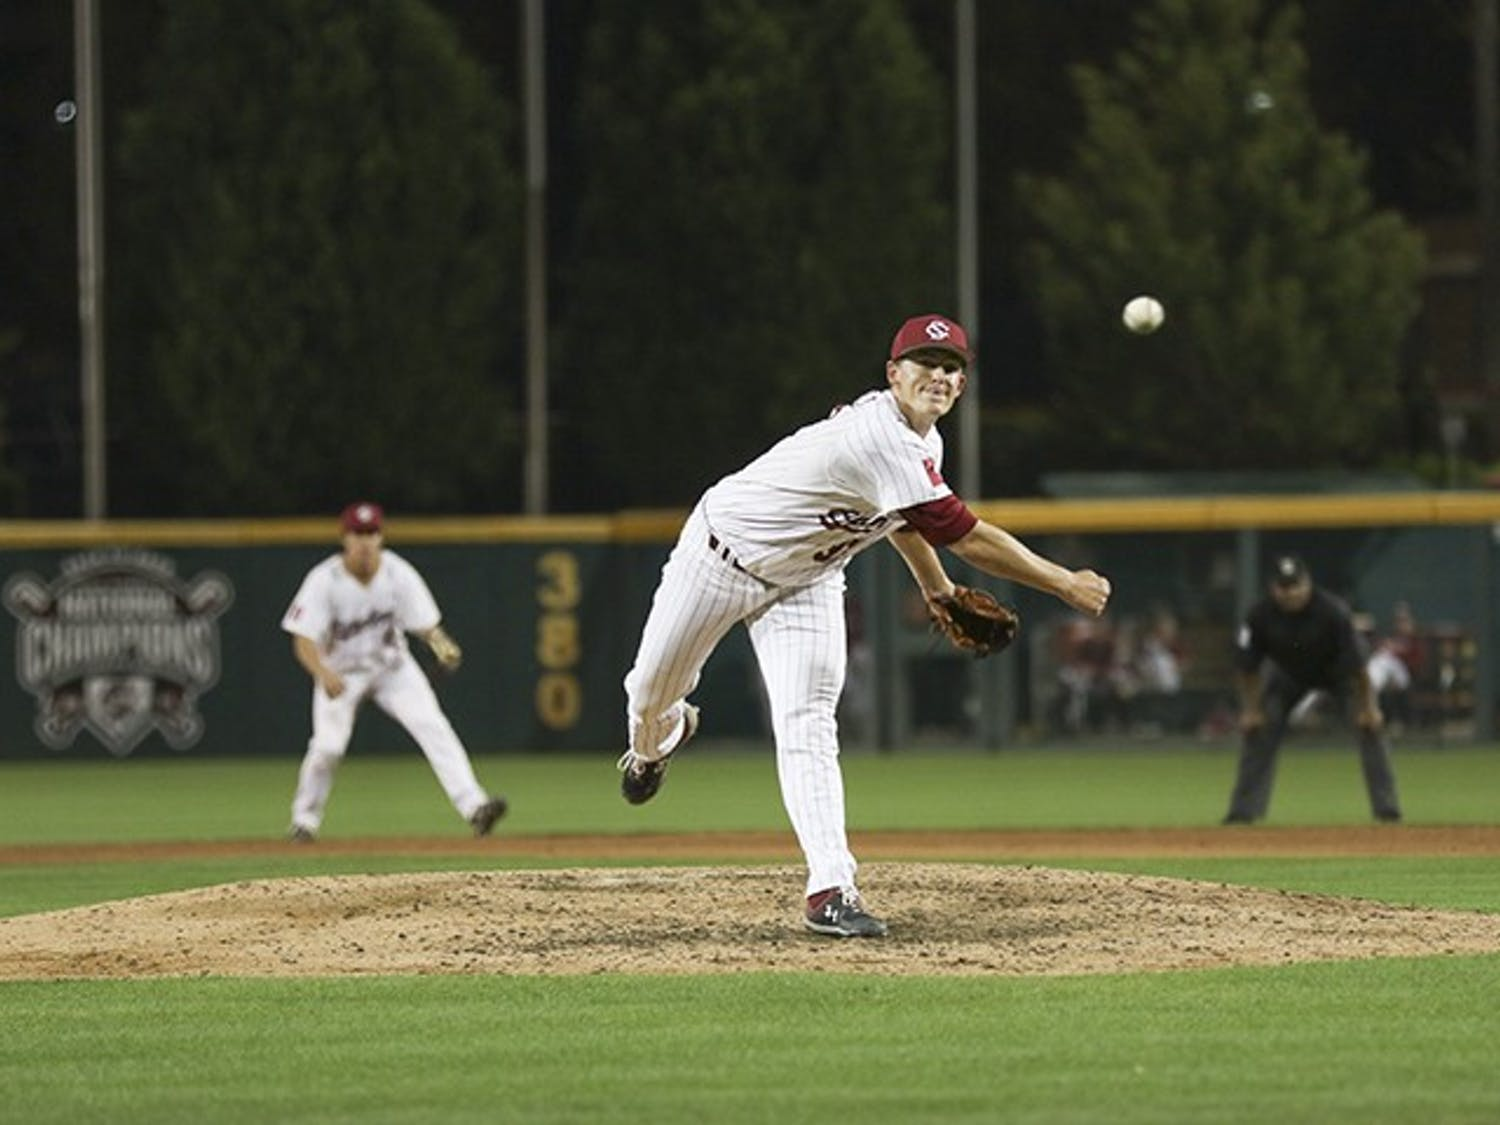 Freshman Cam Tringali pitches the ball during the Friday night game against Auburn at Founders Park.